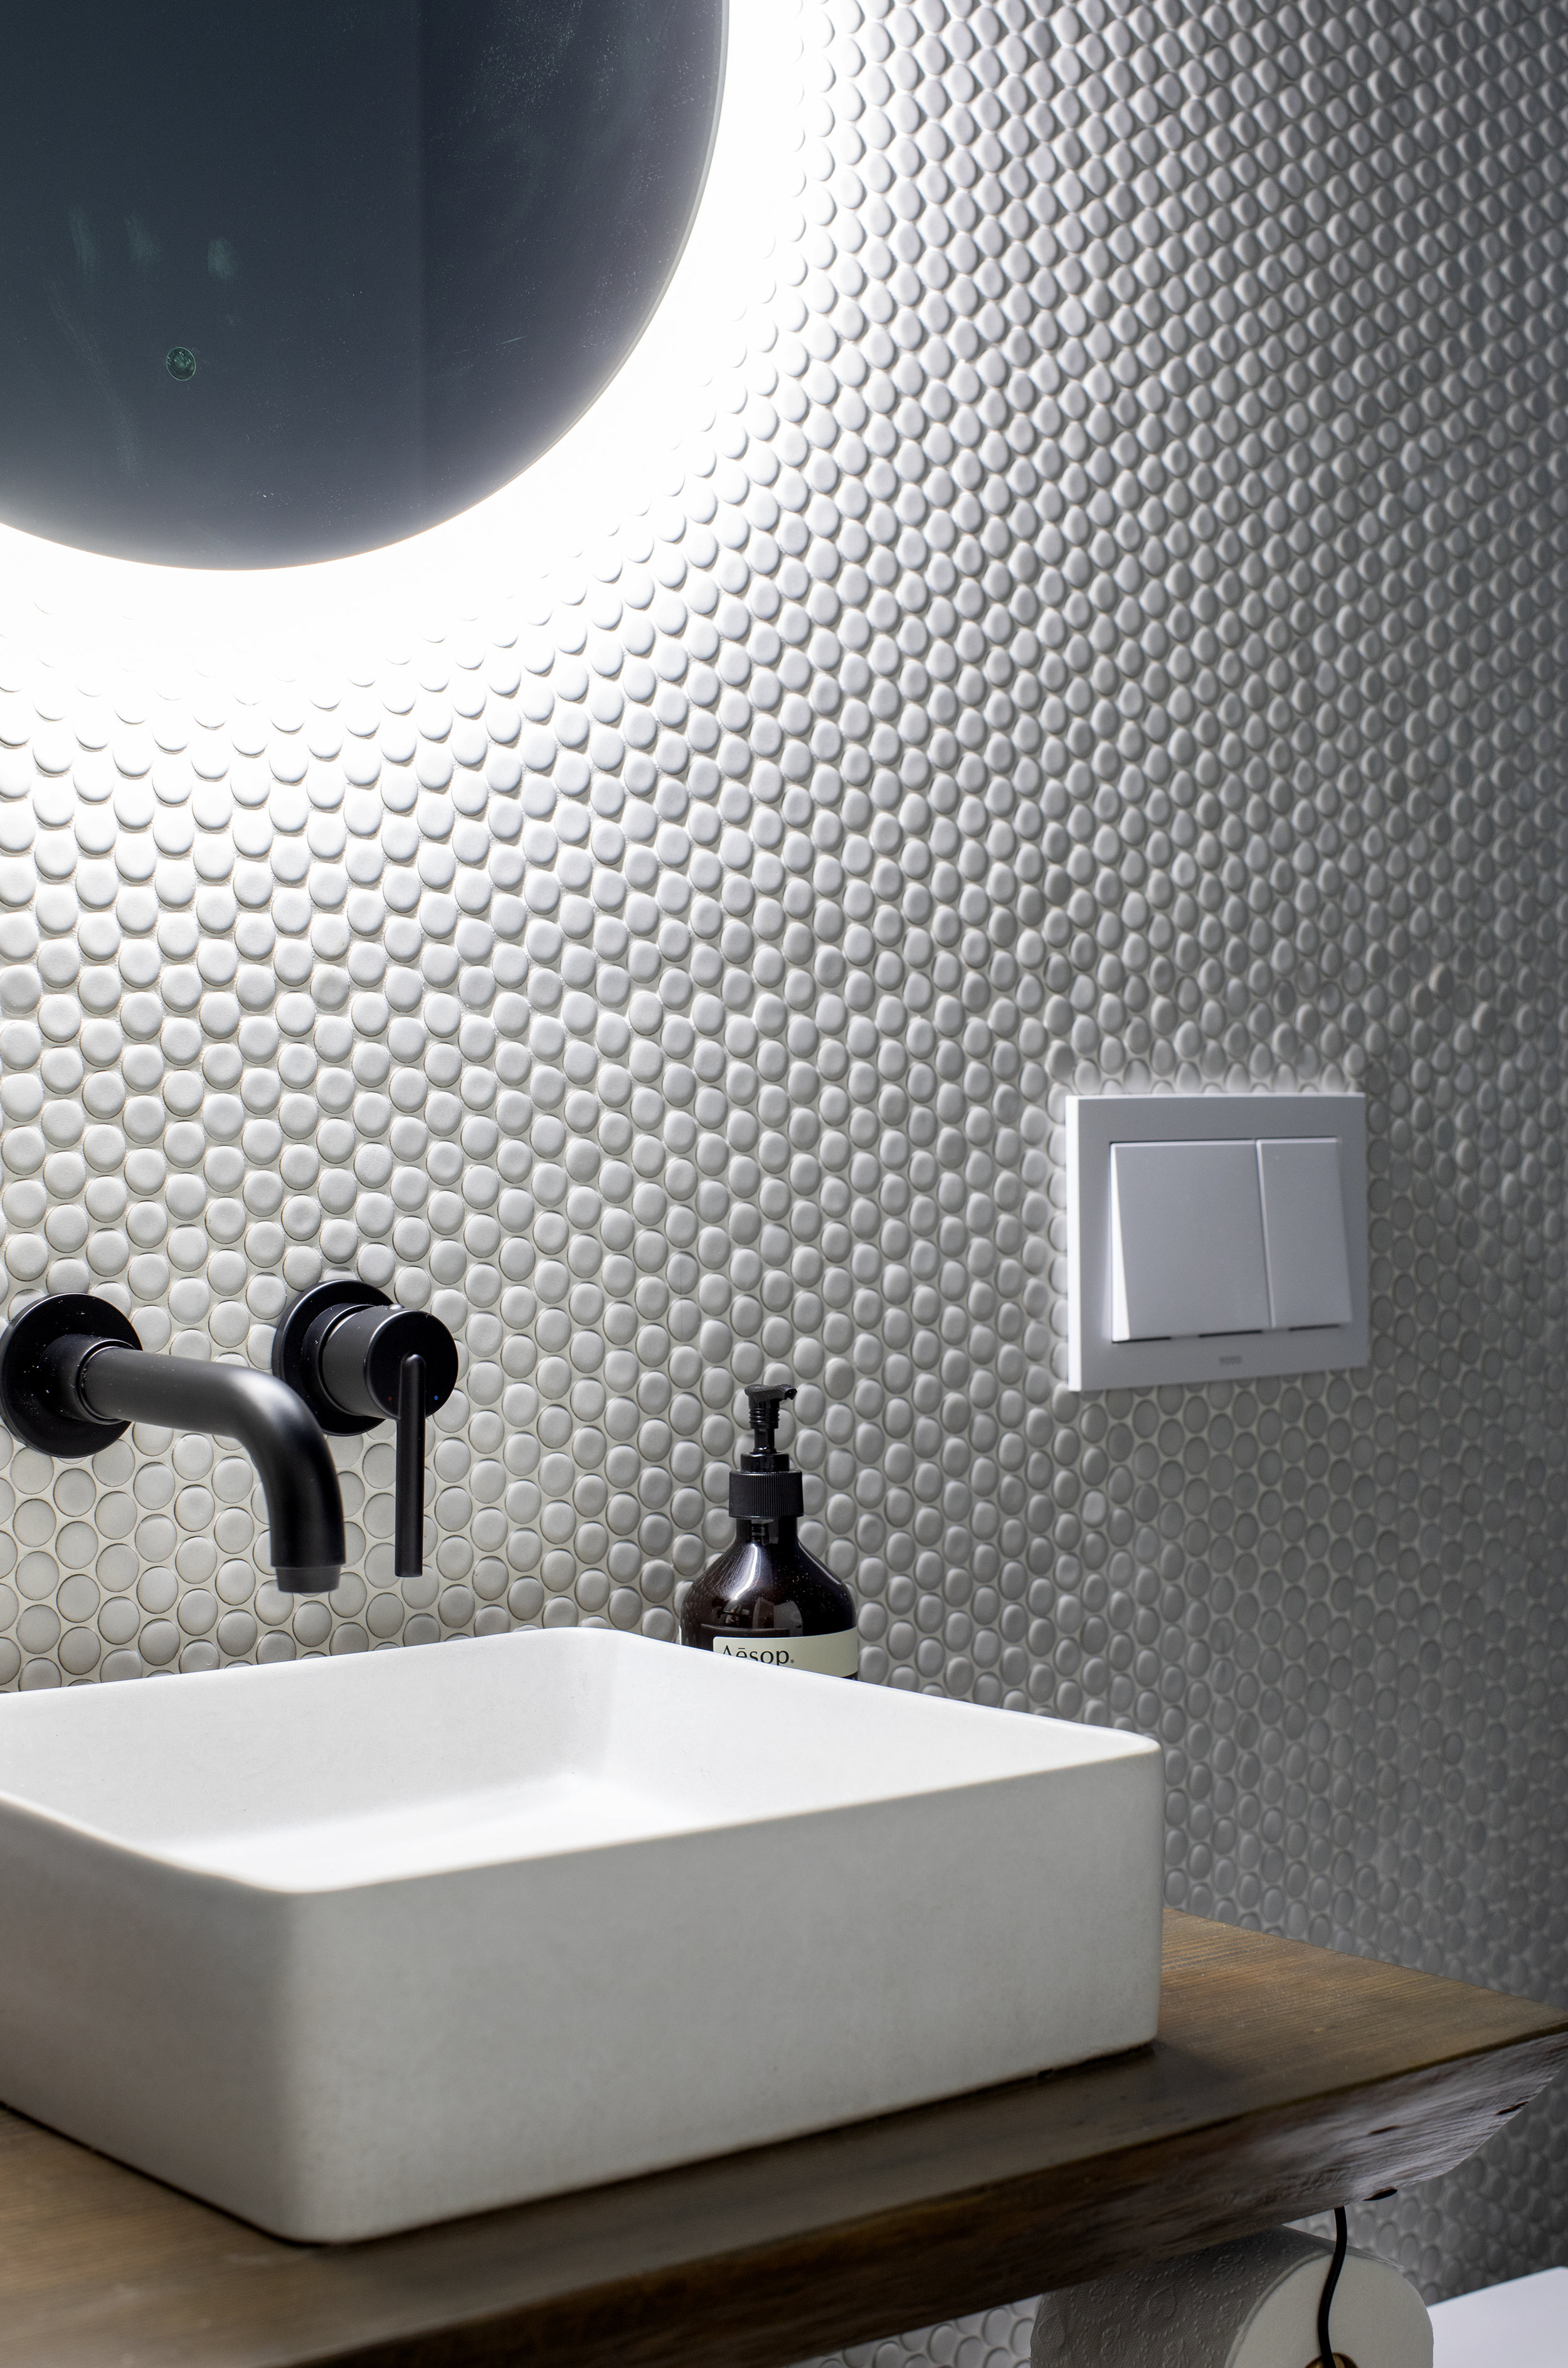 A bathroom at Alderfield Place, with white textured walls and a vanity mirror where light comes from behind.